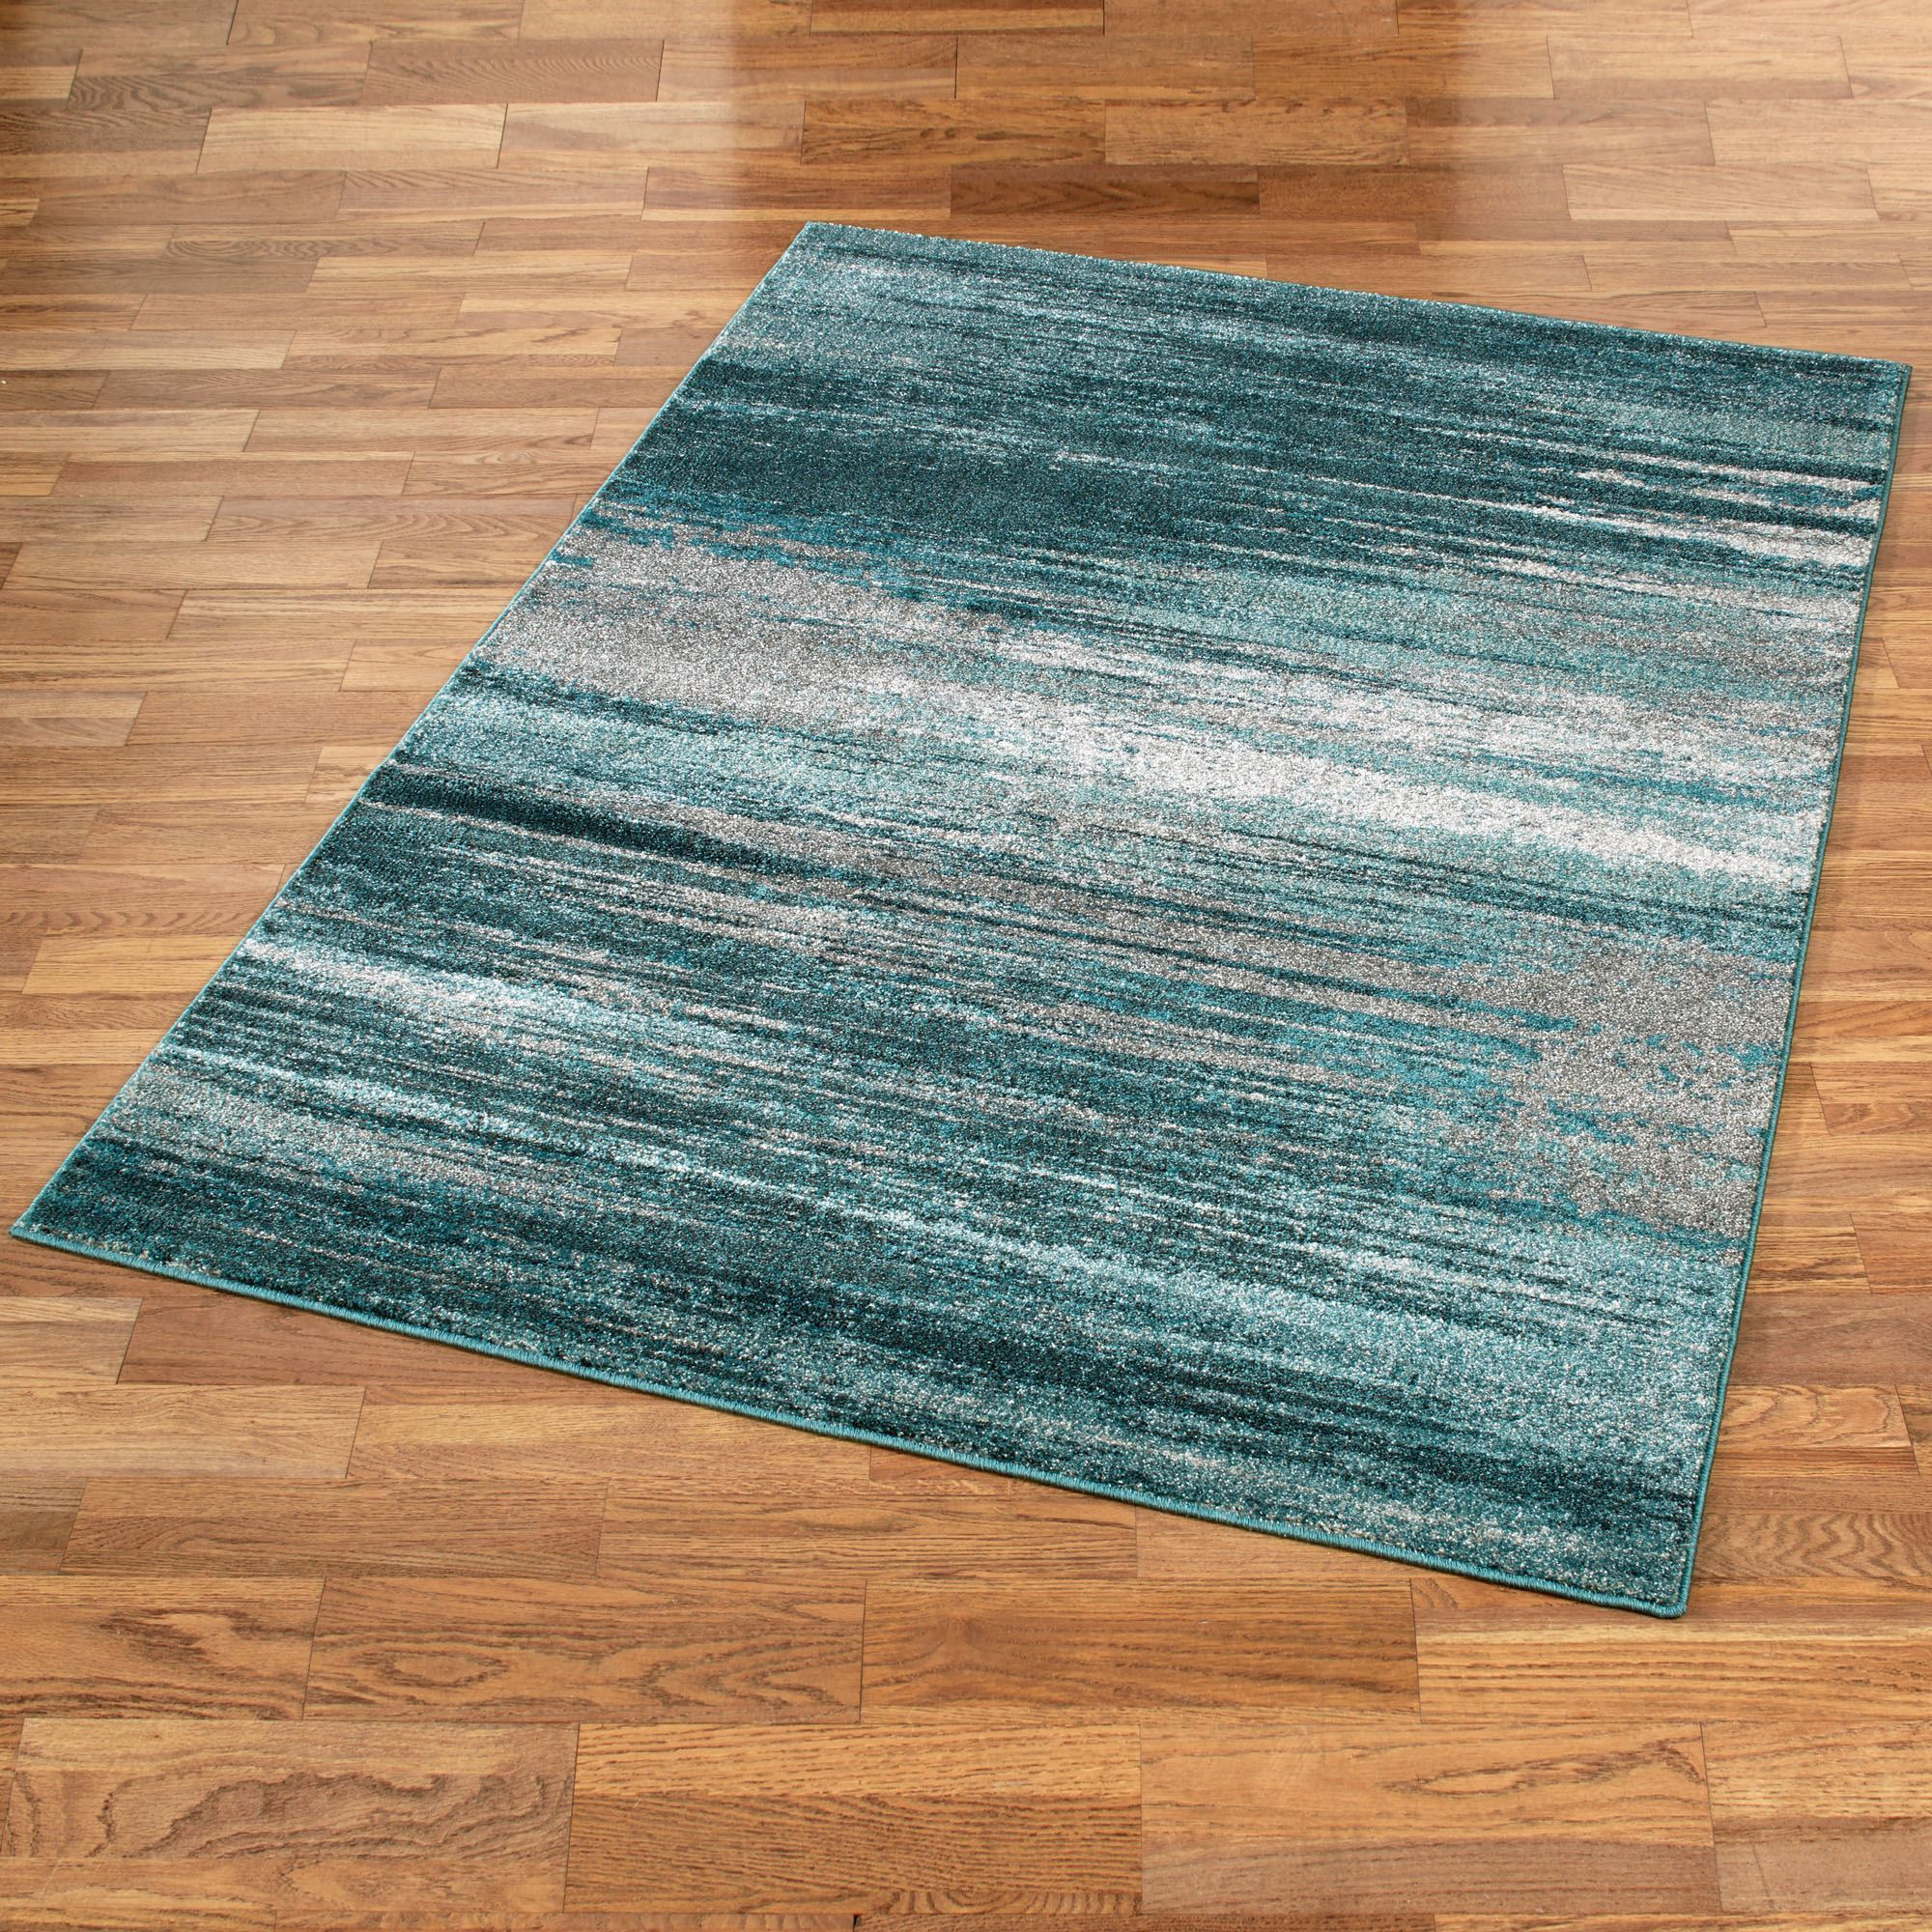 Teal Color Area Rugs Teal Rugs Matching Color Ideas Darbylanefurniture